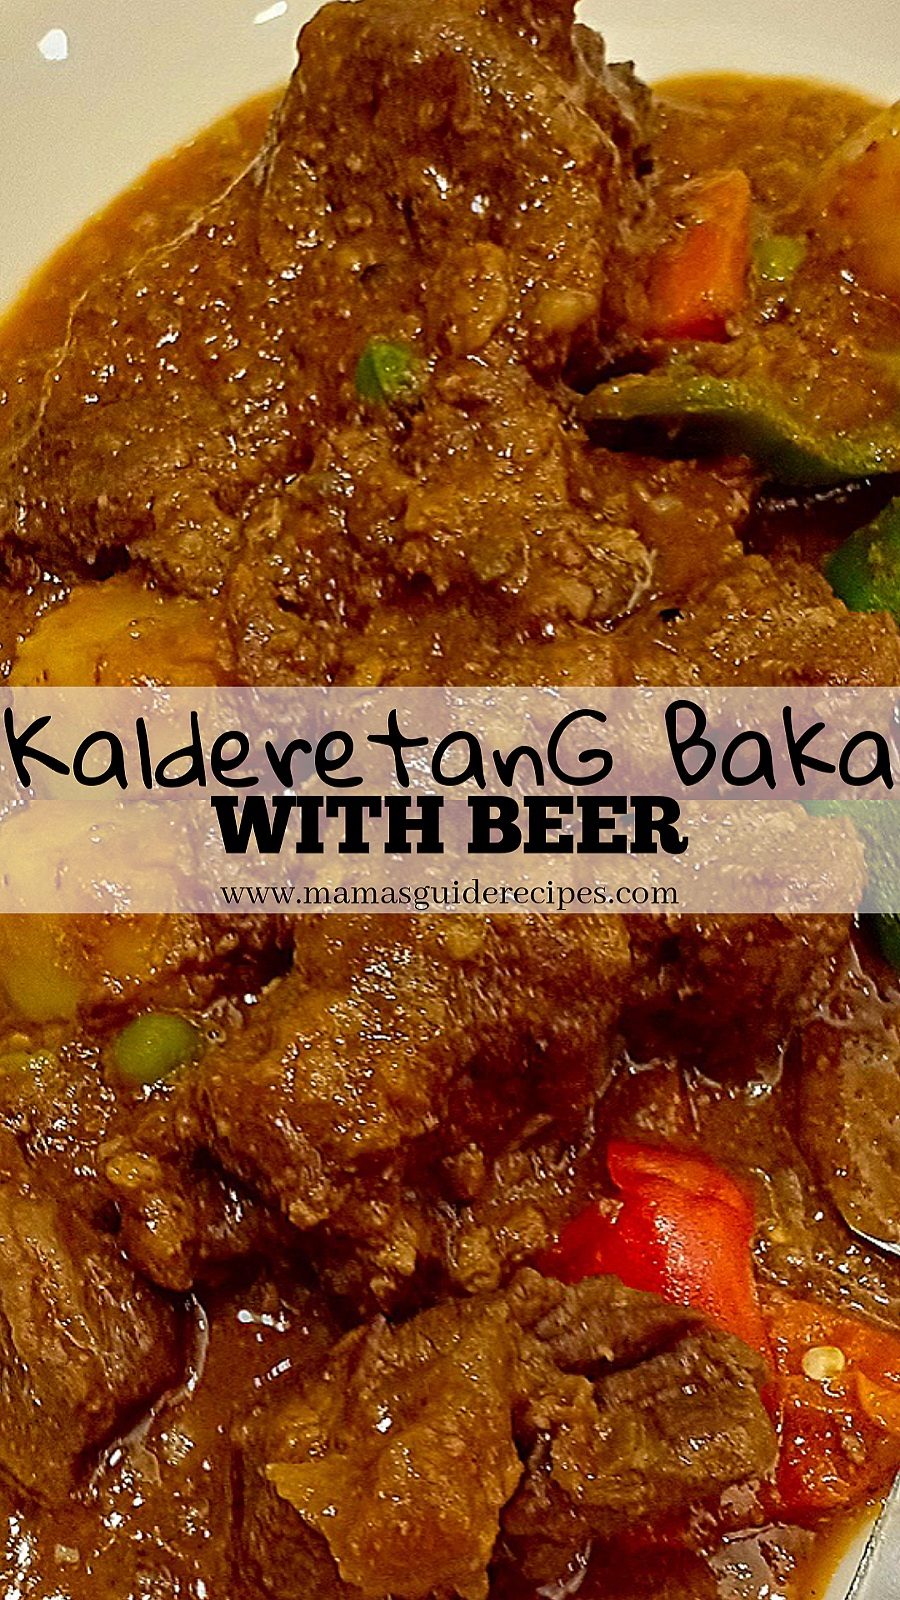 Kalderatang Baka with Beer